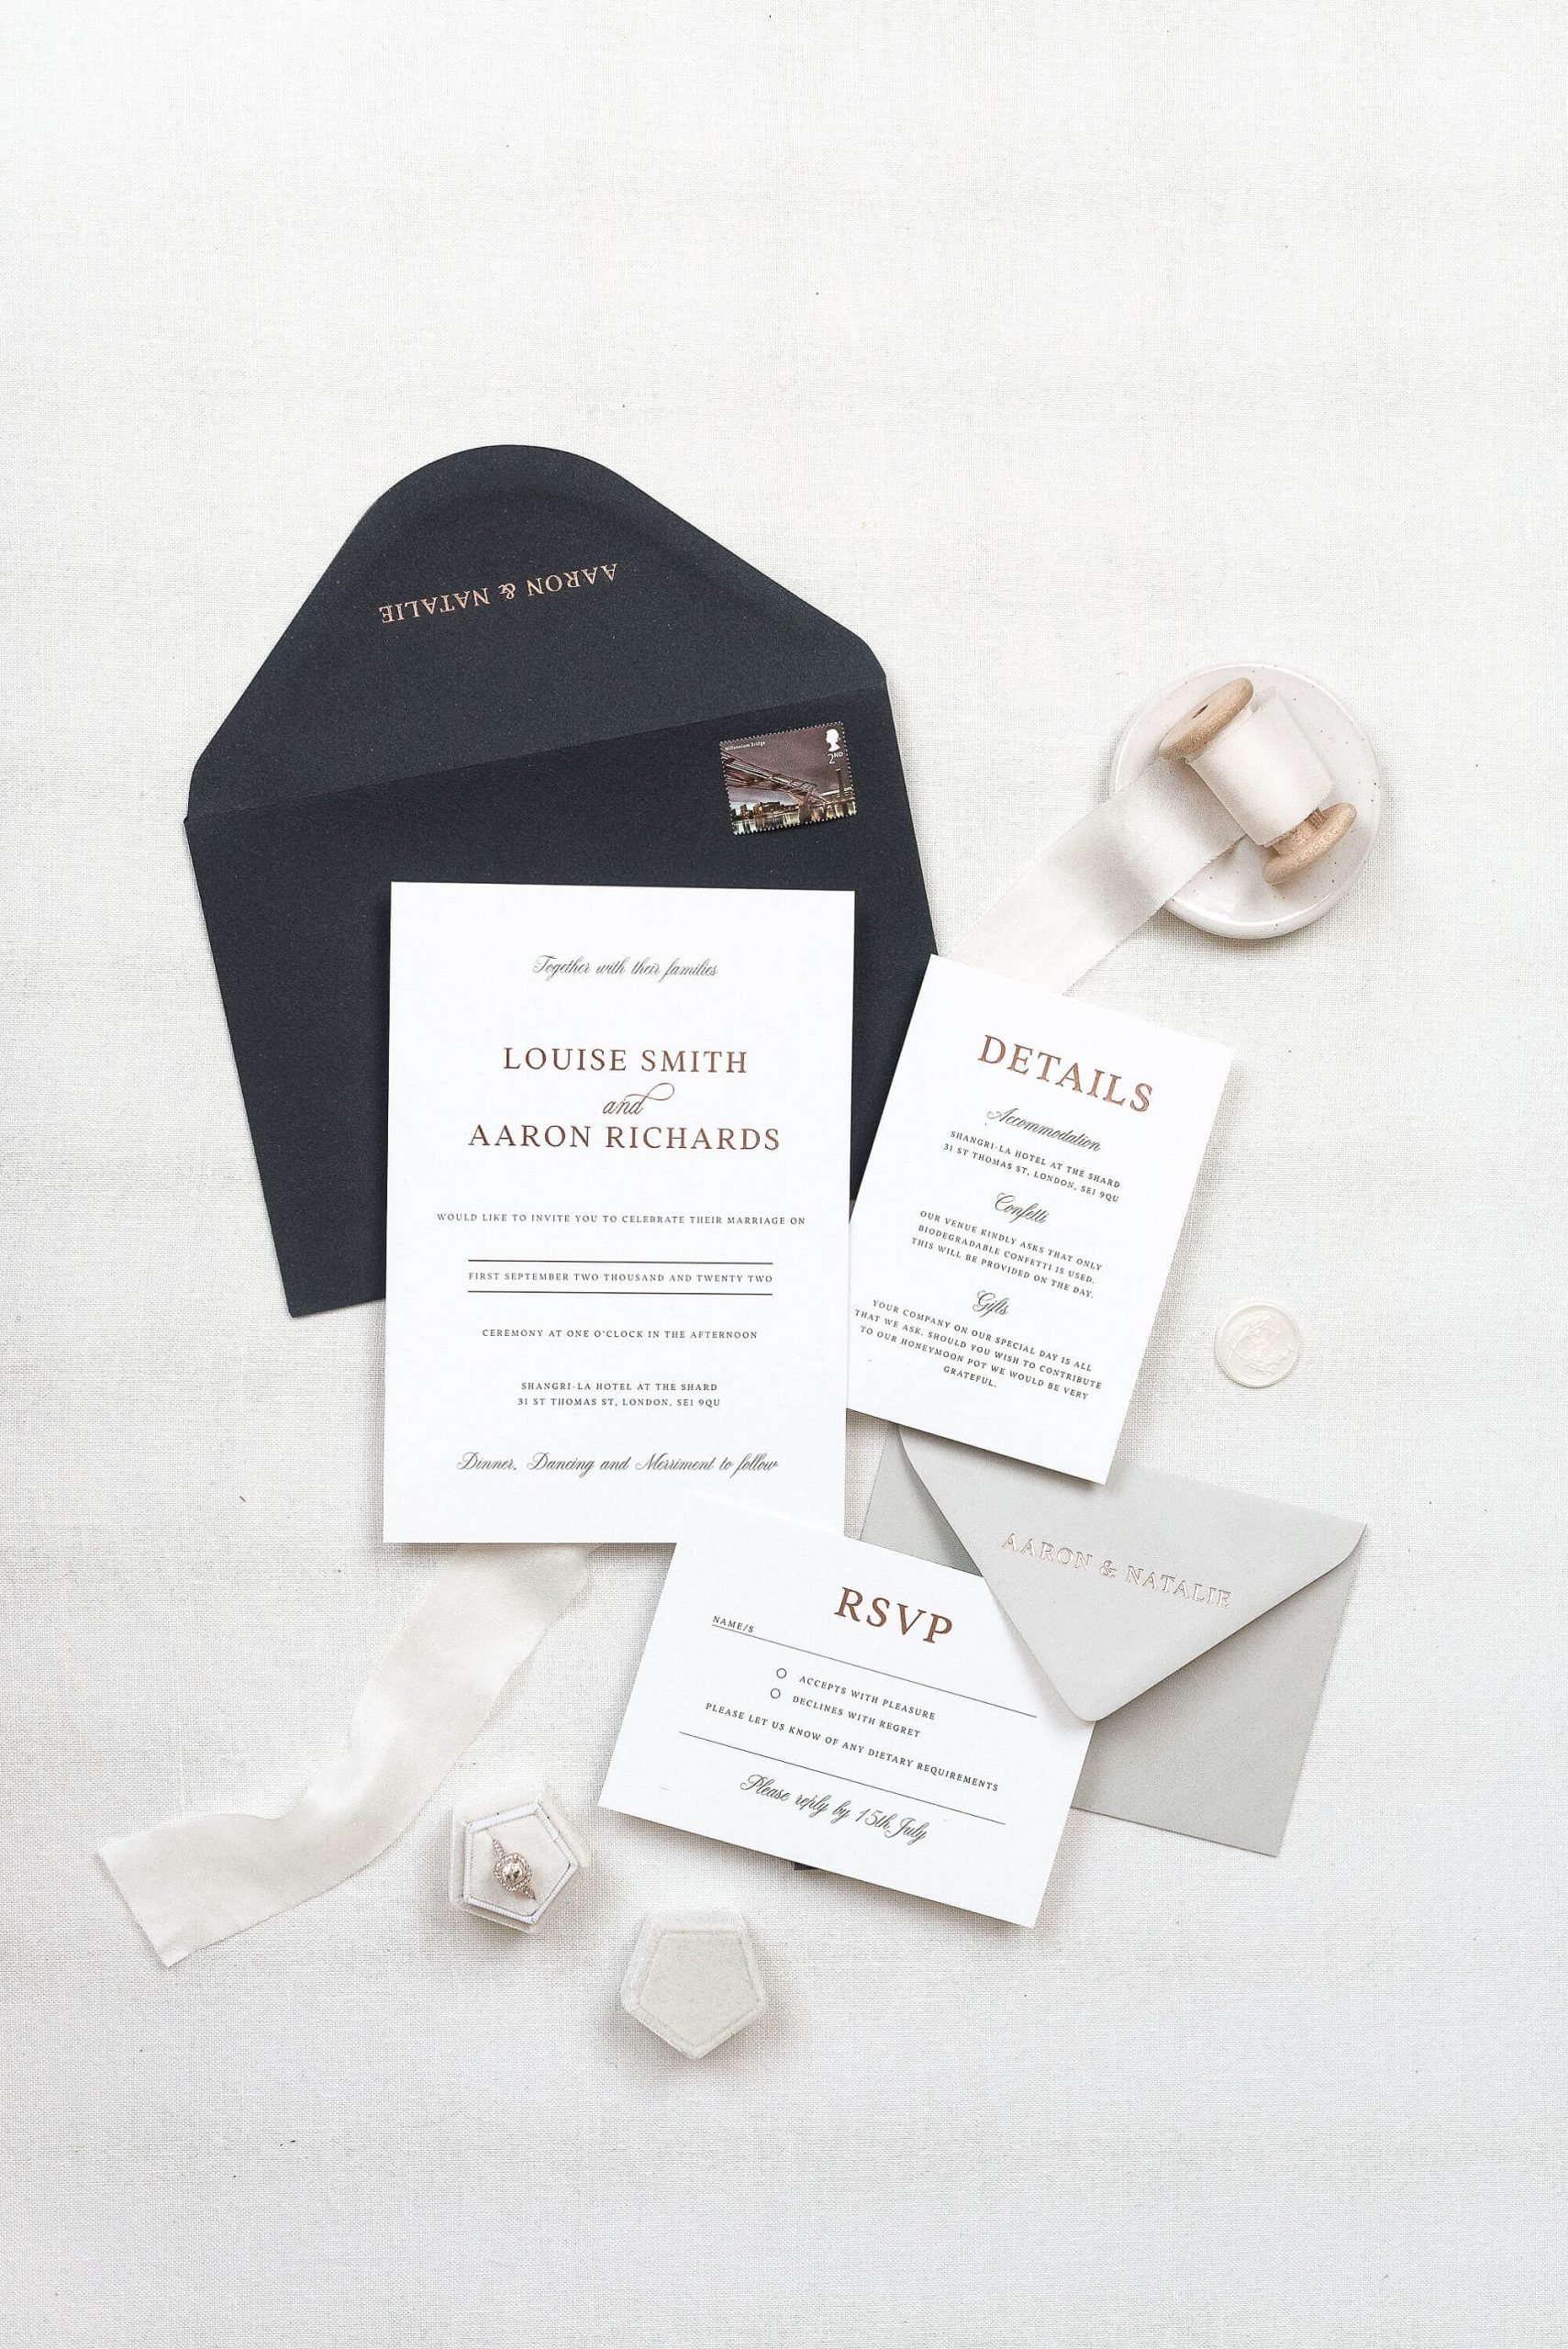 Luxury wedding stationery collection by The Bridal Paperie